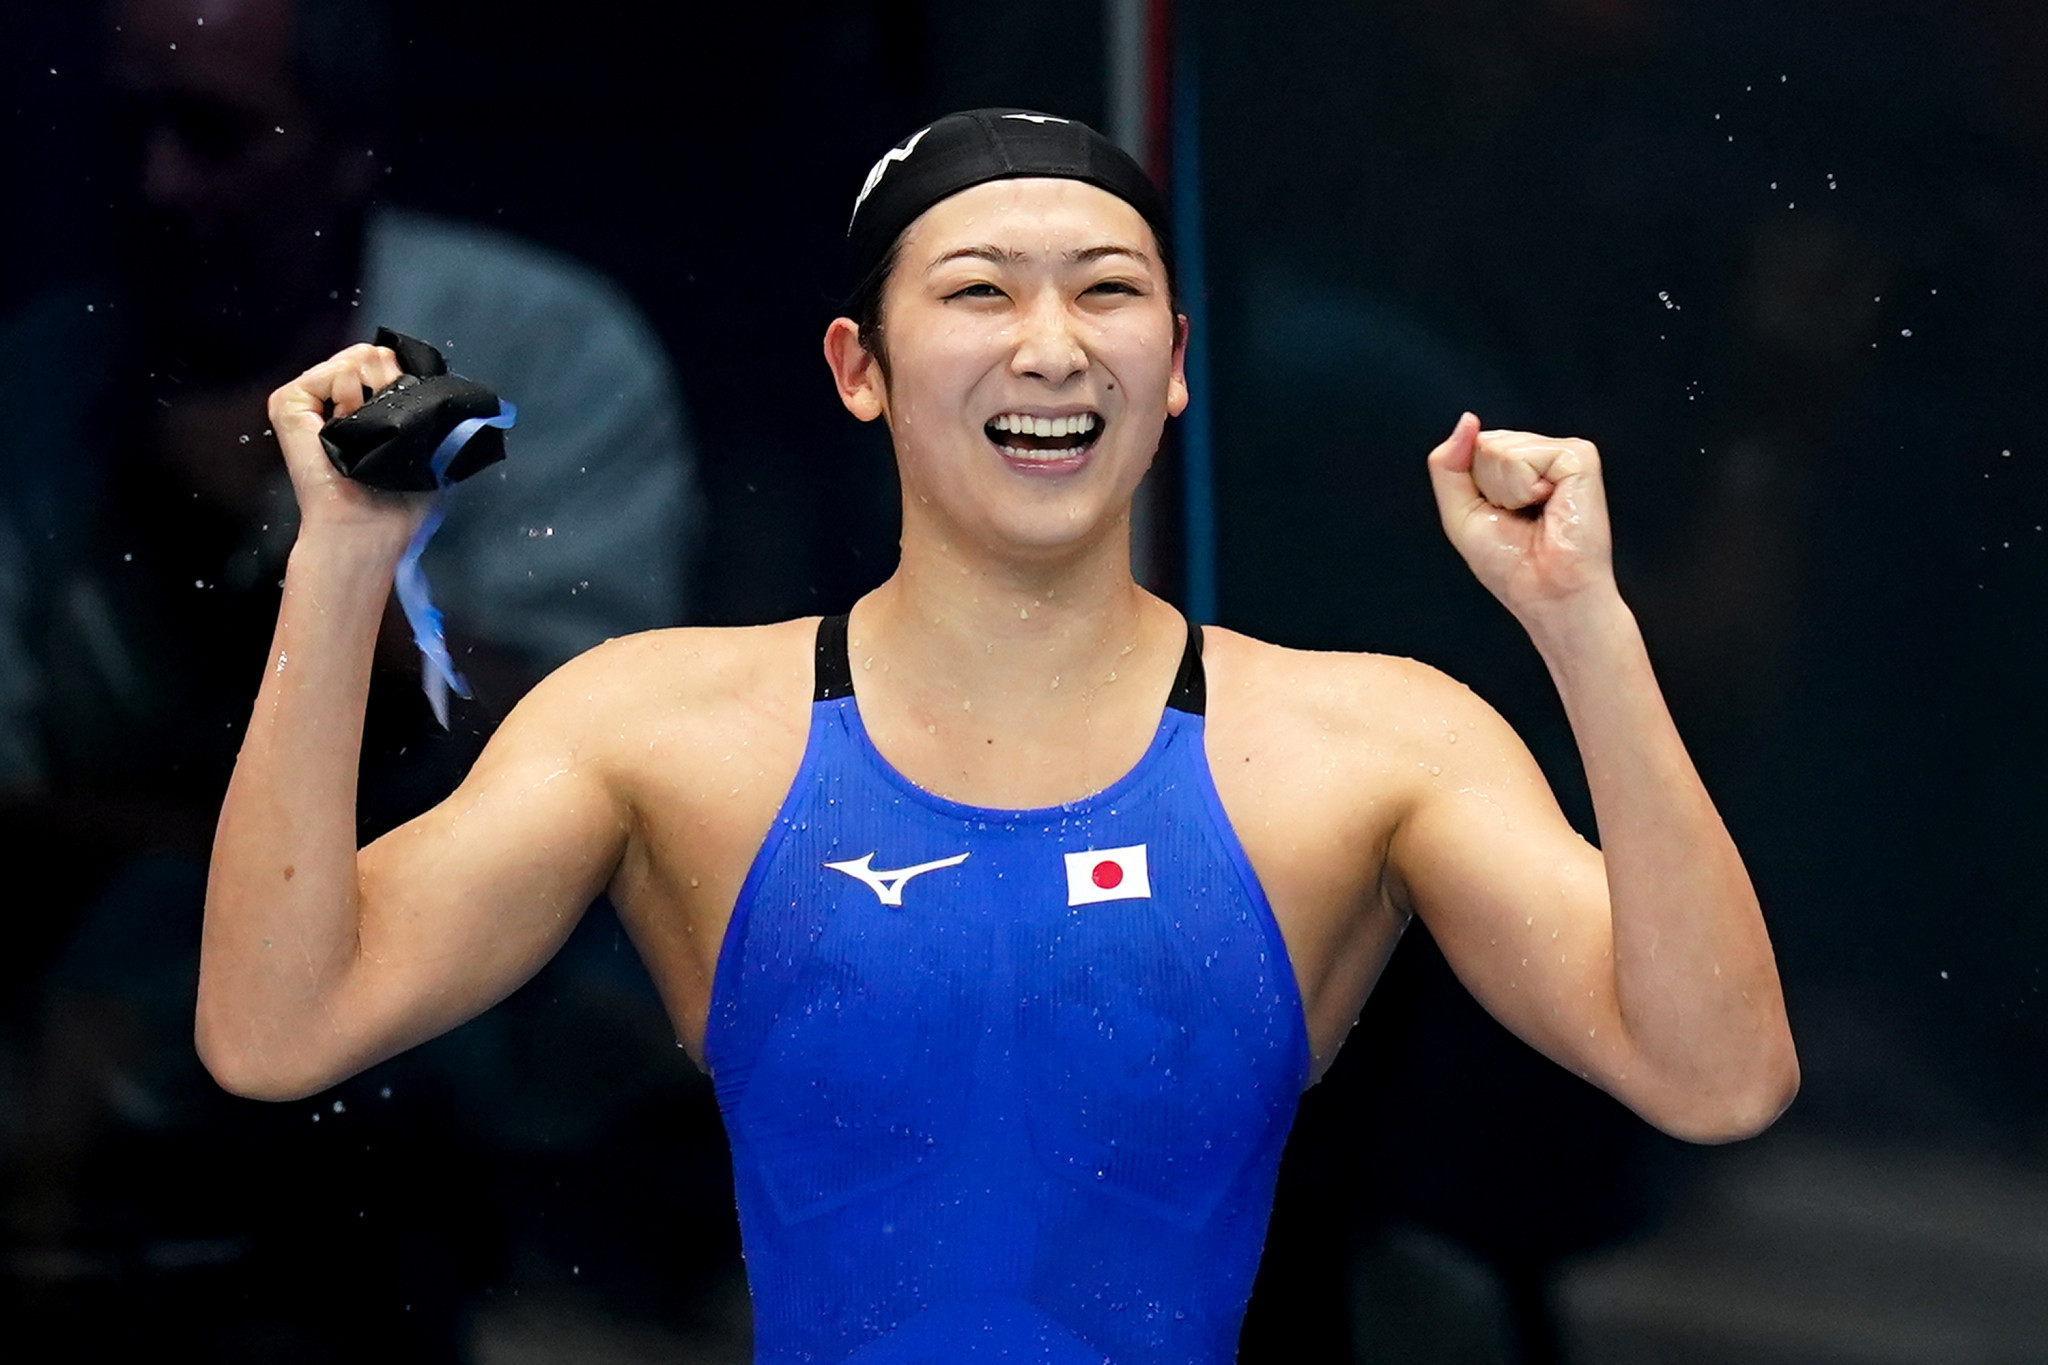 Japanese swimmer Ikee has not ruled out competing at Tokyo 2020 after leukemia recovery